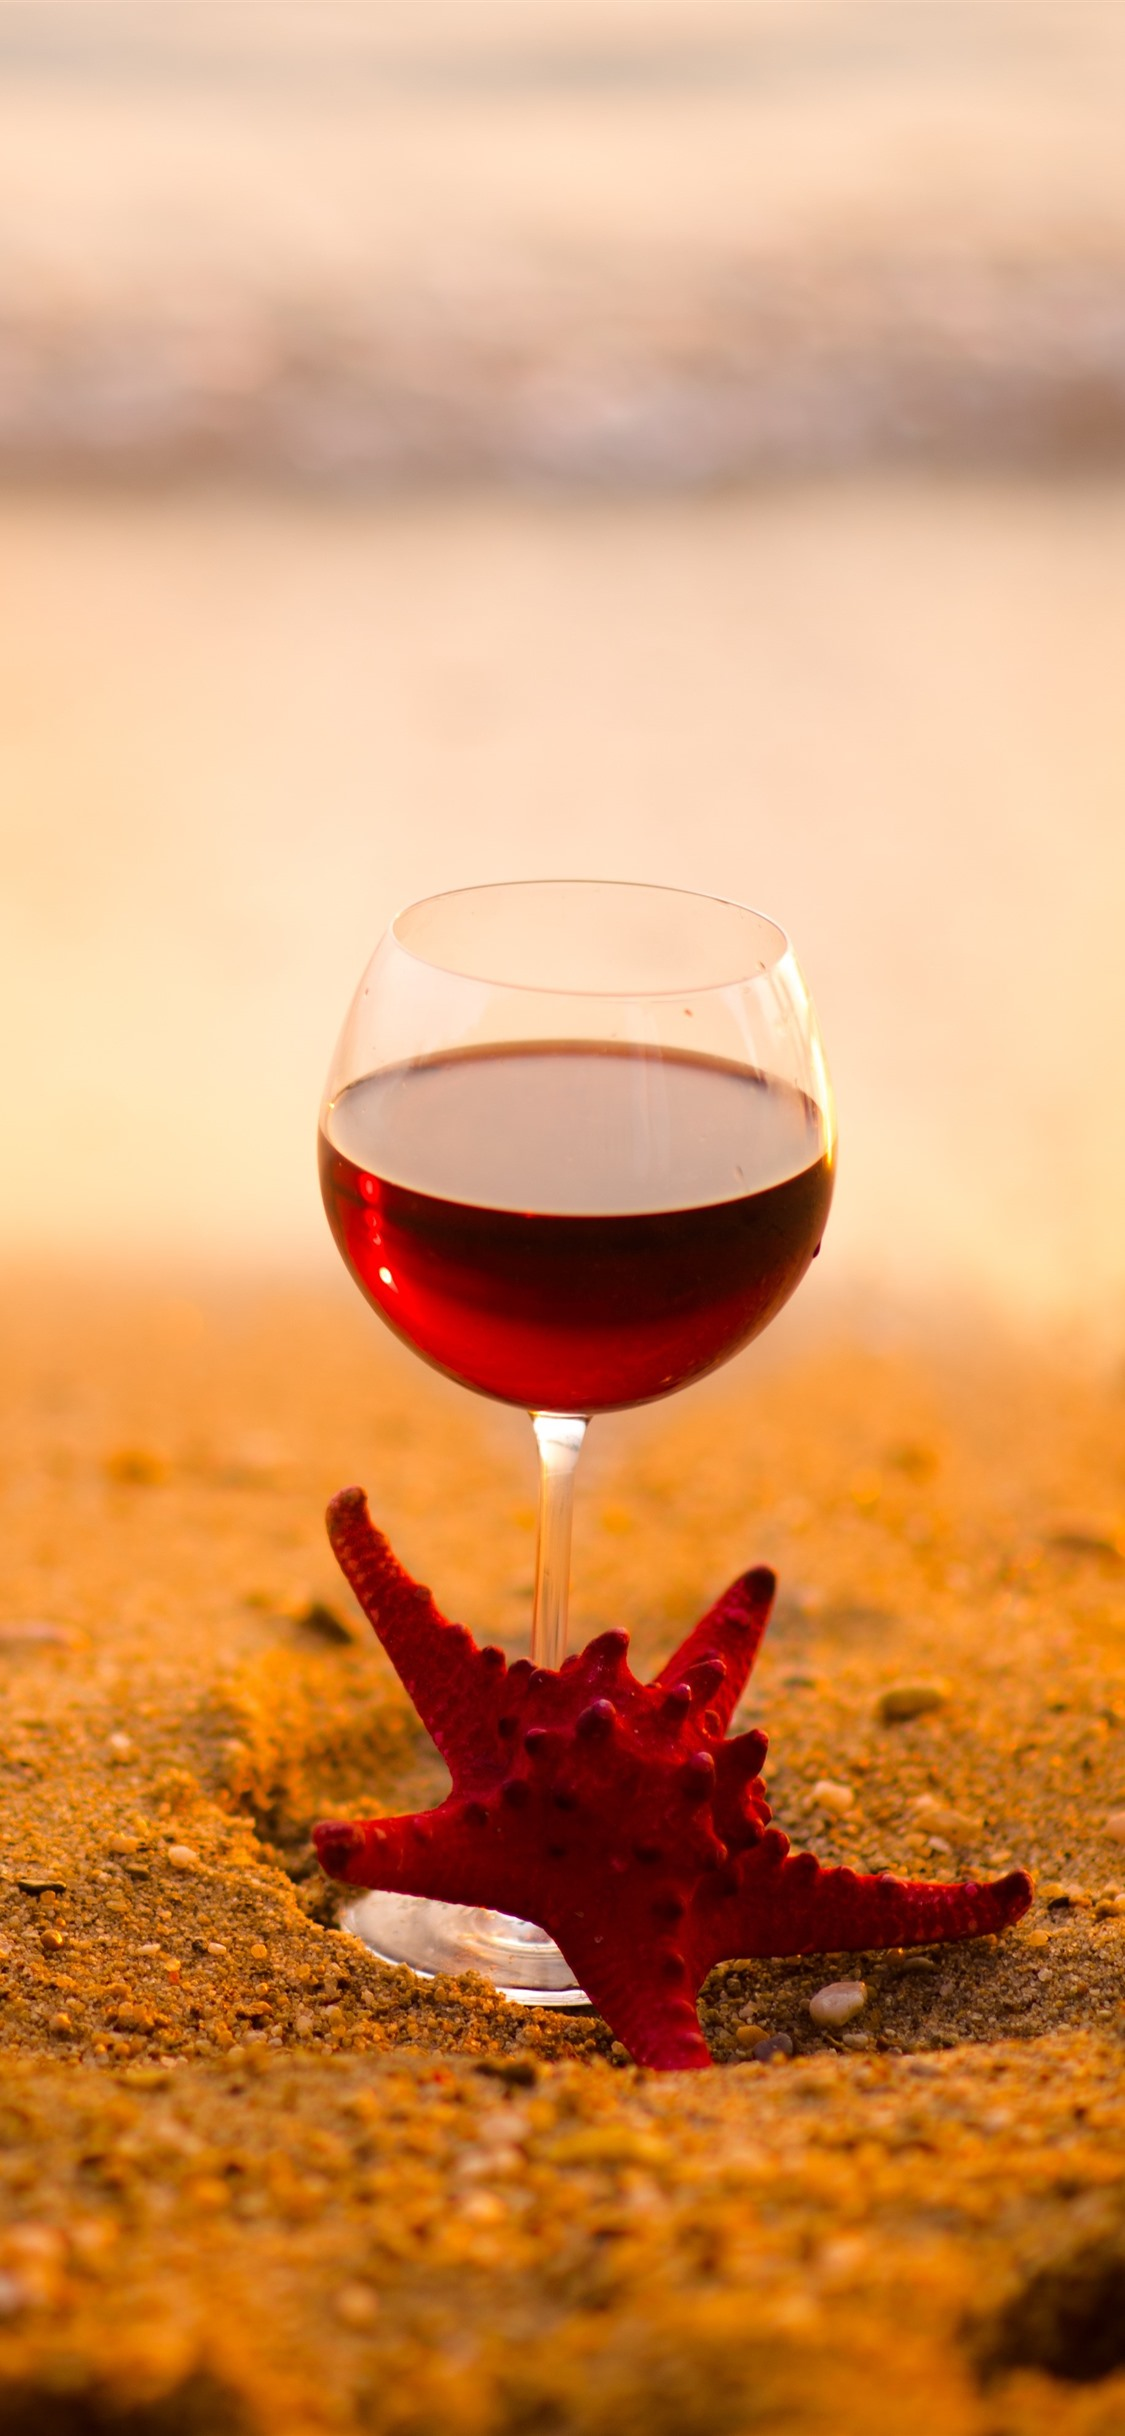 Red Wine Glass Cup Starfish Beach Sea 1242x2688 Iphone 11 Pro Xs Max Wallpaper Background Picture Image